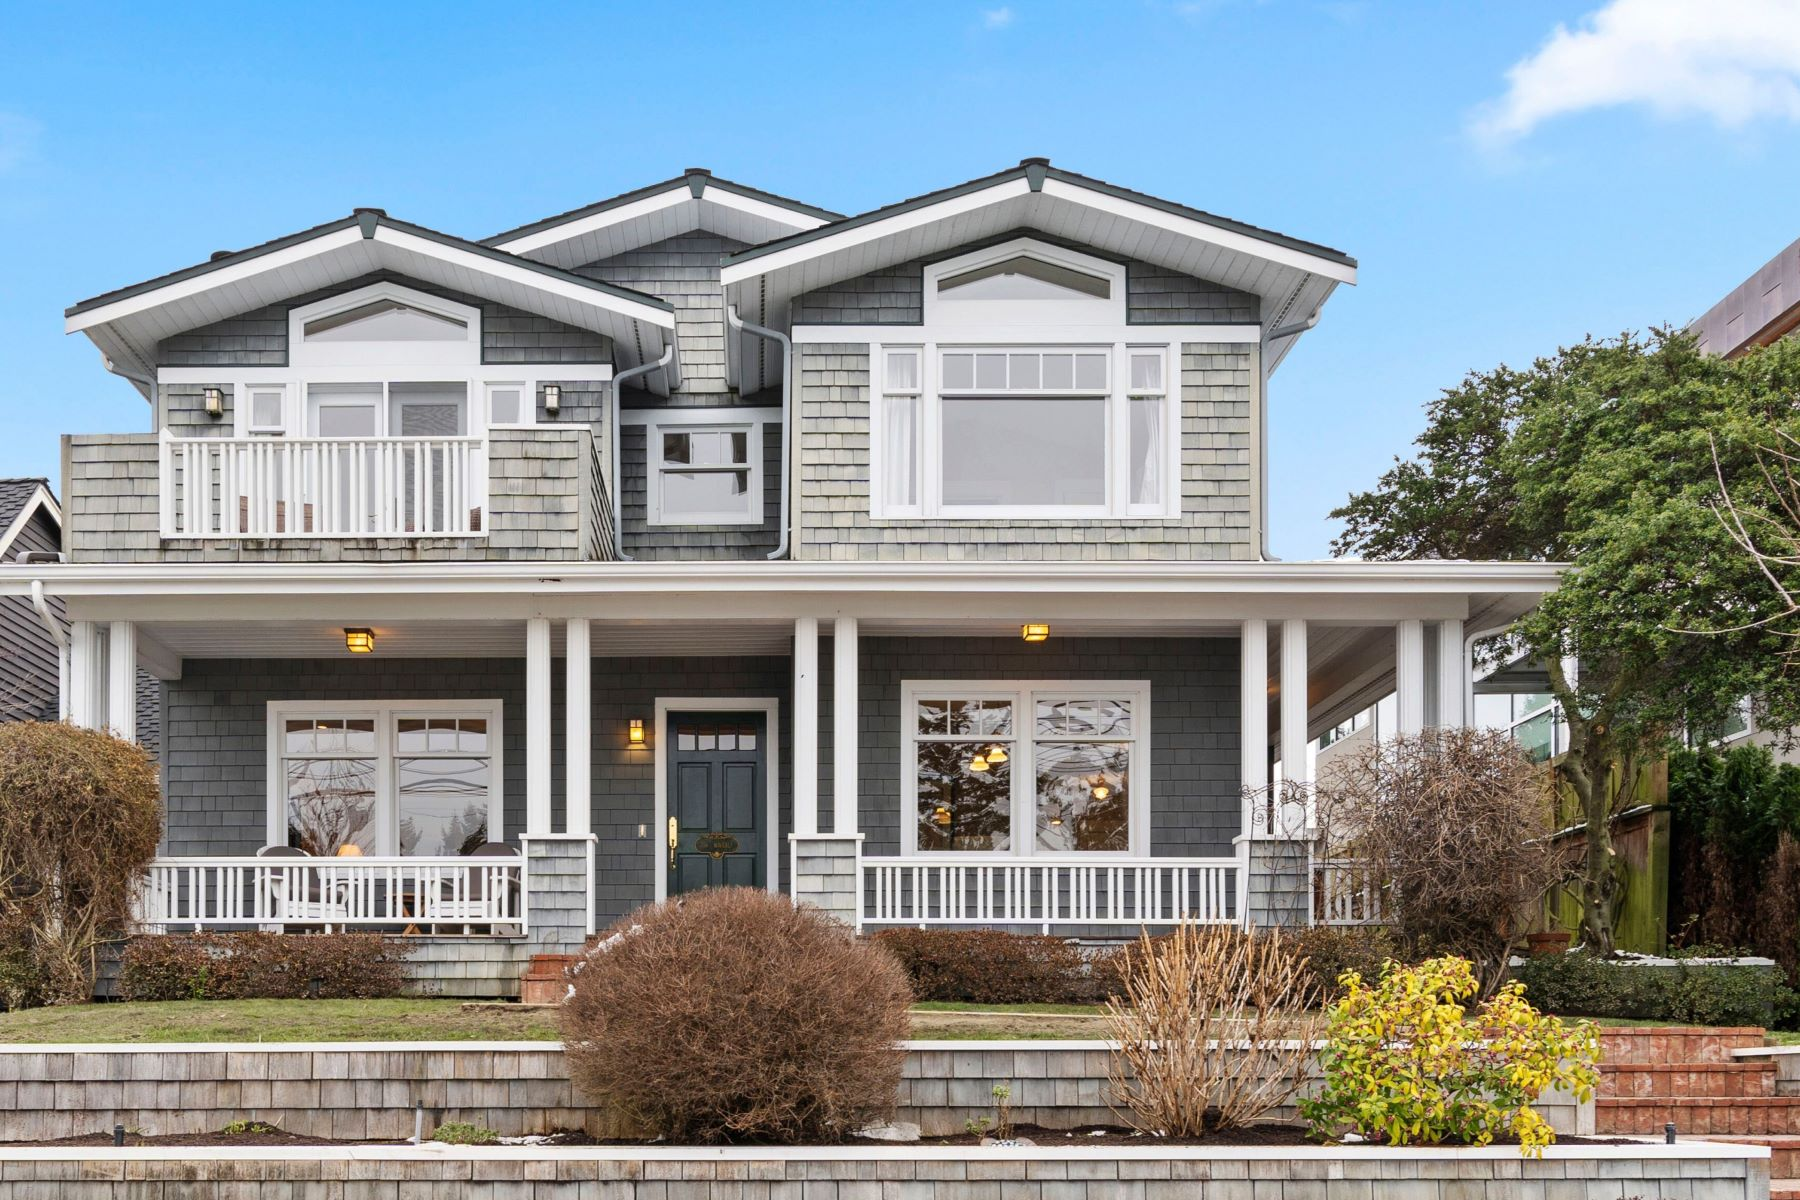 Single Family Homes for Sale at 156 Waverly Way, Kirkland, WA 98033 156 Waverly Way Kirkland, Washington 98033 United States